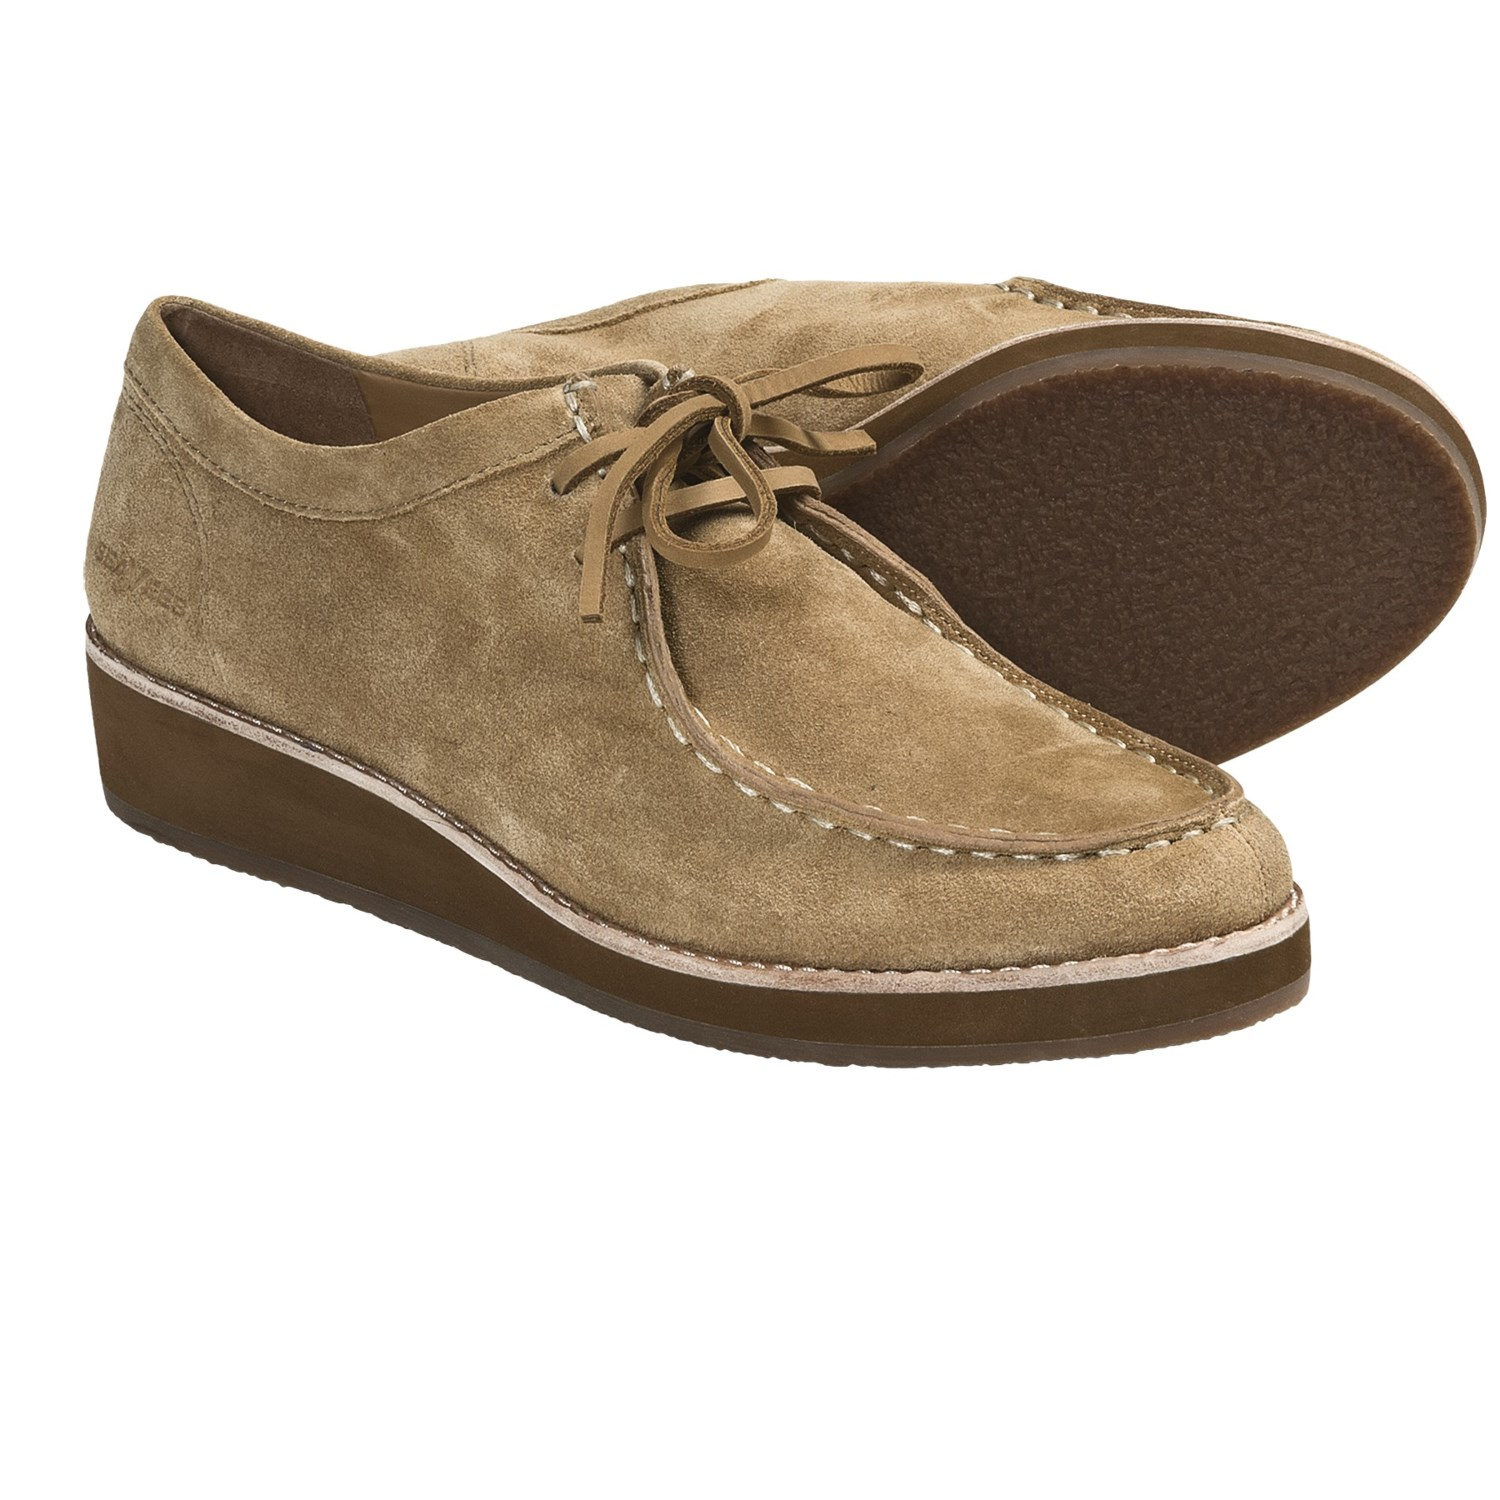 Chestnut suede oxford shoes - Dorothy Perkins - Polyvore